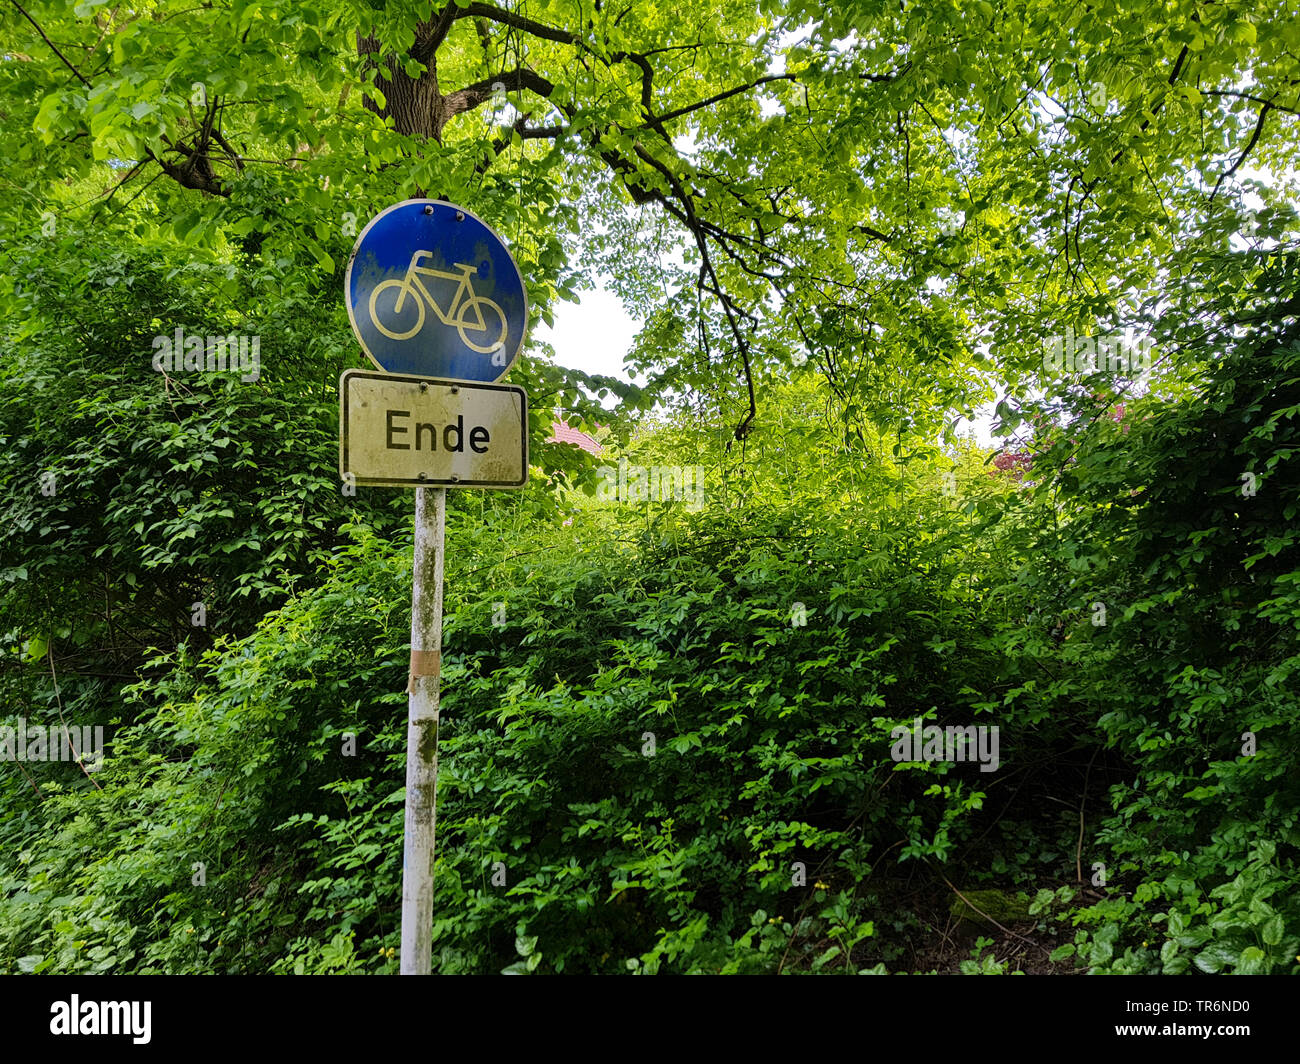 end of a cycle way, Germany, North Rhine-Westphalia, Ruhr Area, Witten - Stock Image